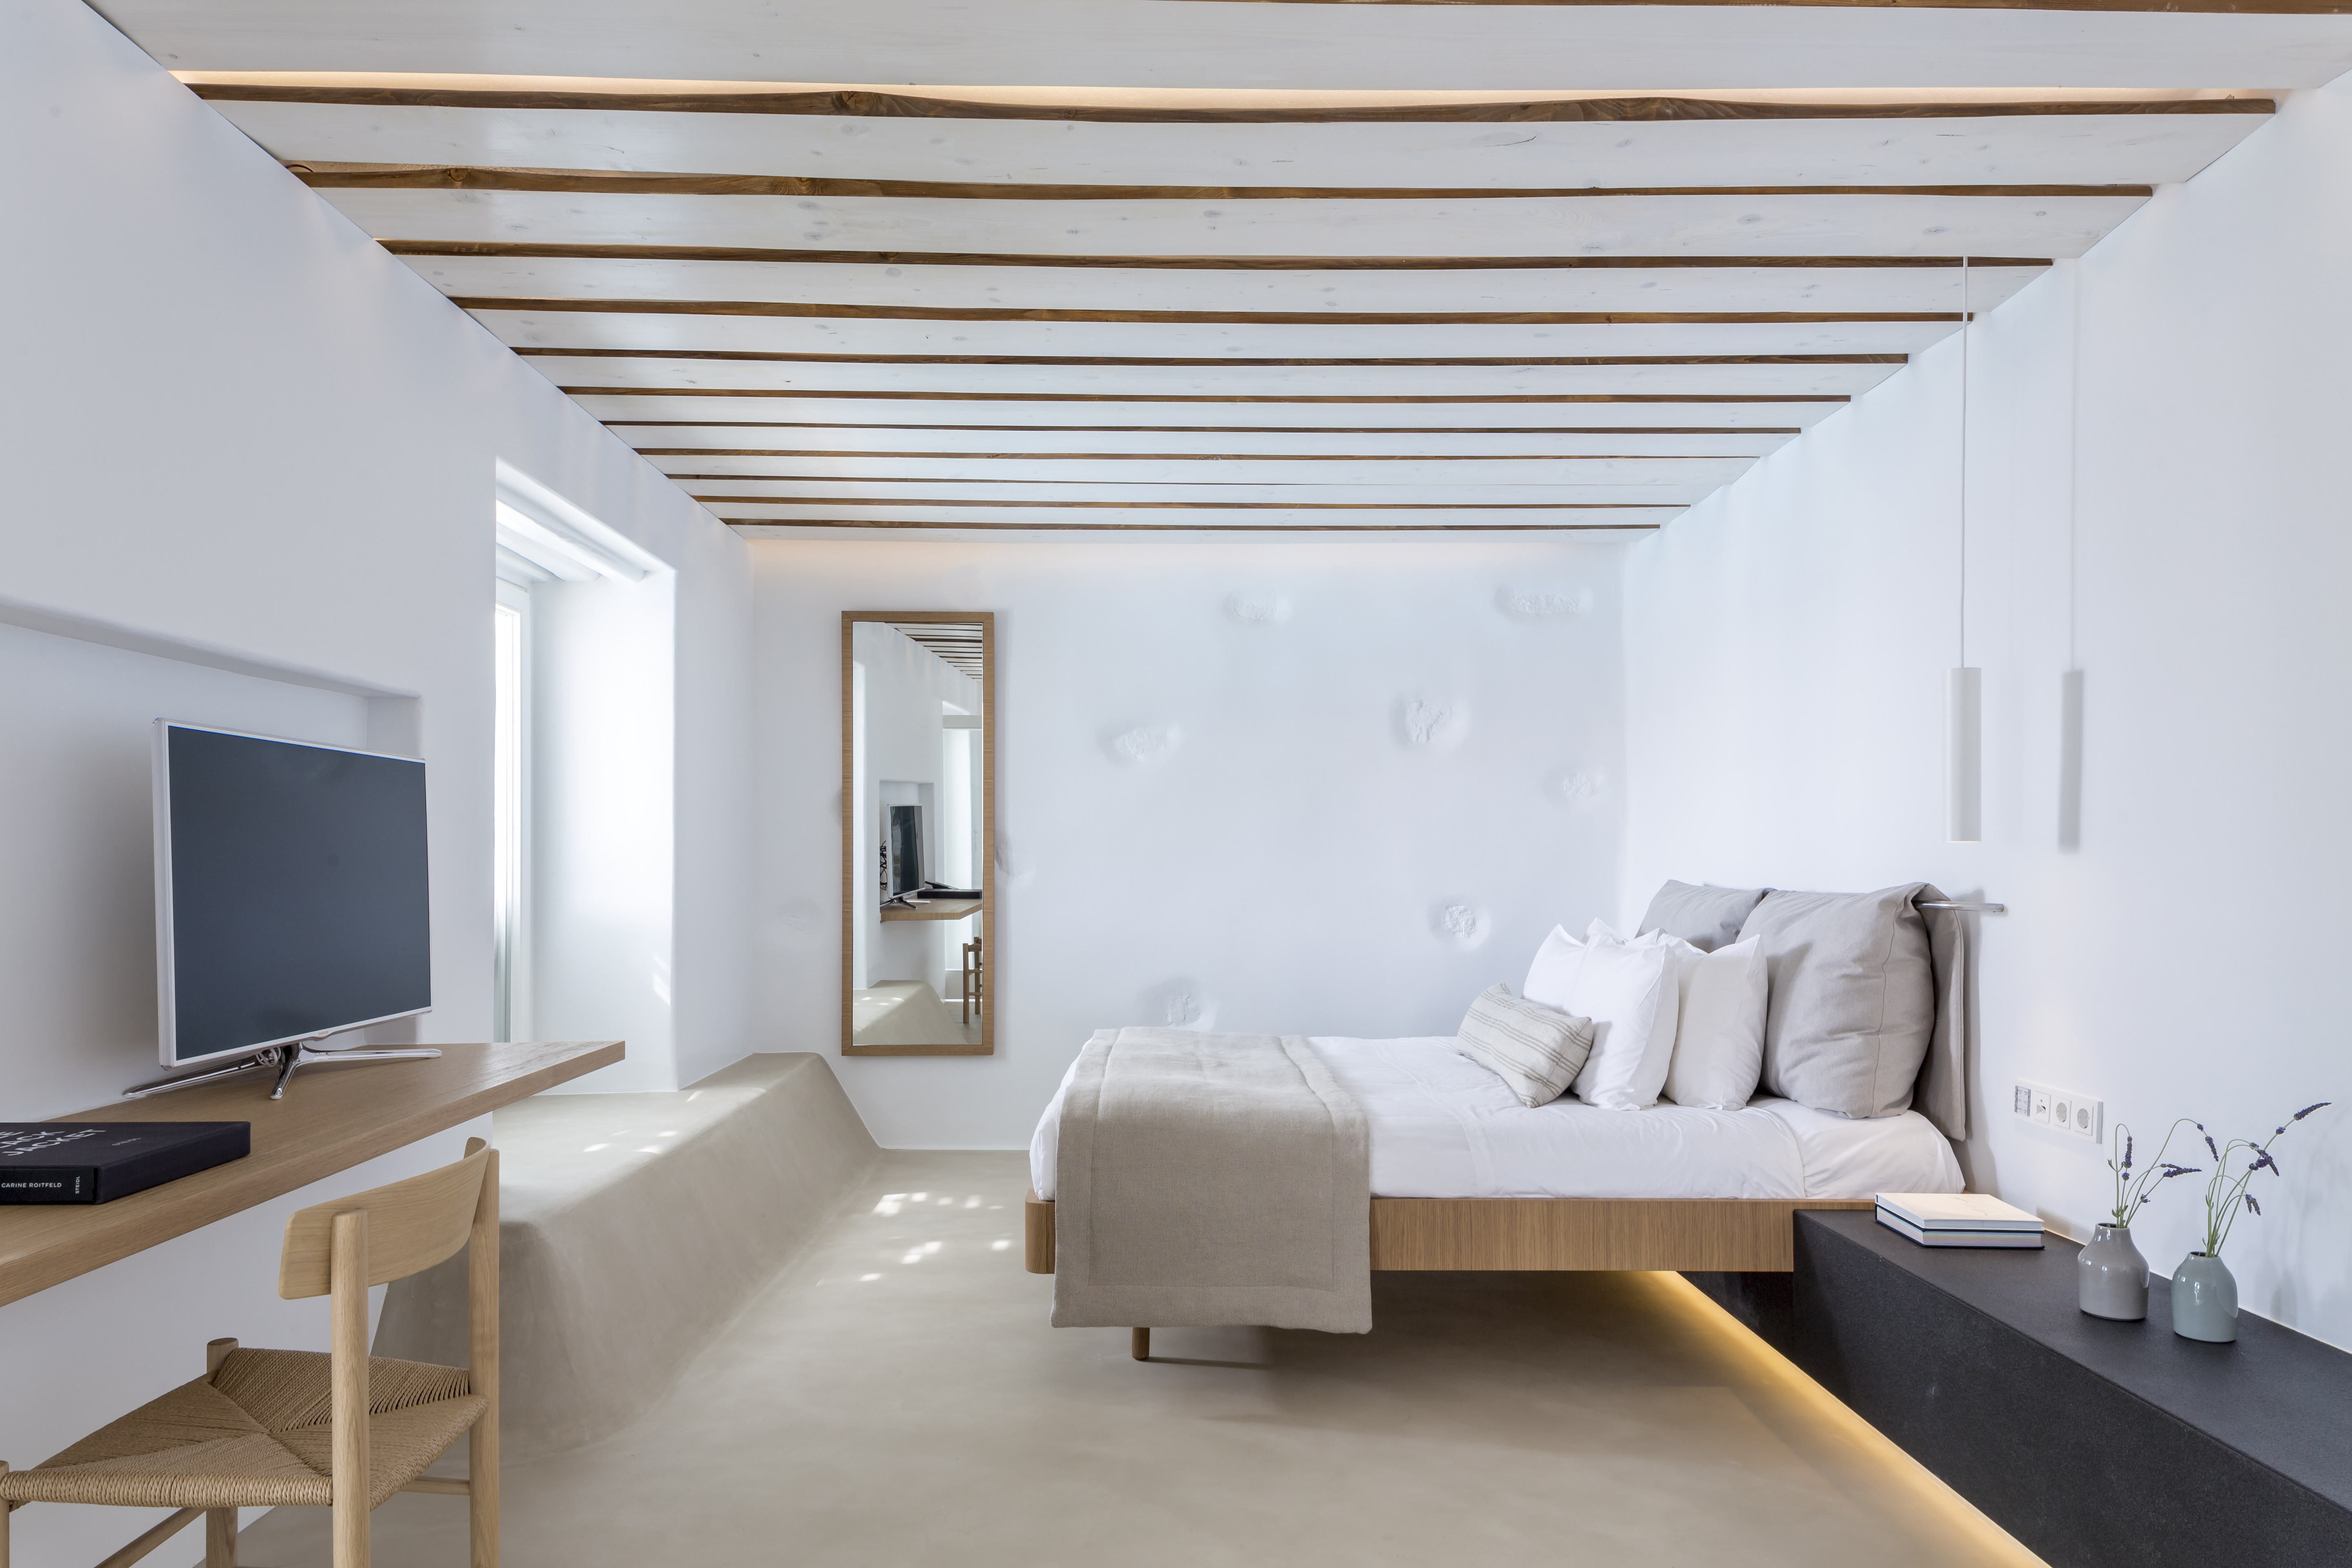 Bill & Coo, Mykonos, Greece                                                              Already a haven from the bustling crowds of Mykonos Town, the luxury boutique hotel Bill & Coo has just emerged from a makeover that saw Greek architects K-studio redesign some of its 35 bedroom suites. Using their signature warm, crafted aesthetic, the studio took the local architectural vernacular and building techniques as inspiration, incorporating natural materials such as granite stone and oak to create a soothing atmosphere. Lighting comes courtesy of local design firm IFI Group, while chic CEA Design fittings are installed in bathrooms. The hotel retains its excellent service and award-winning alfresco restaurant, which features a contemporary Greek menu from chef Athinagoras Kostakos, specialising in locally sourced meat and seafood.                                                               Megali Ammos, Mykonos, 84600; Tel: 30.22 8902 6292; www.bill-coo-hotel.com; www.k-studio.gr; rates from €260                                                              (Writer: David Paw)